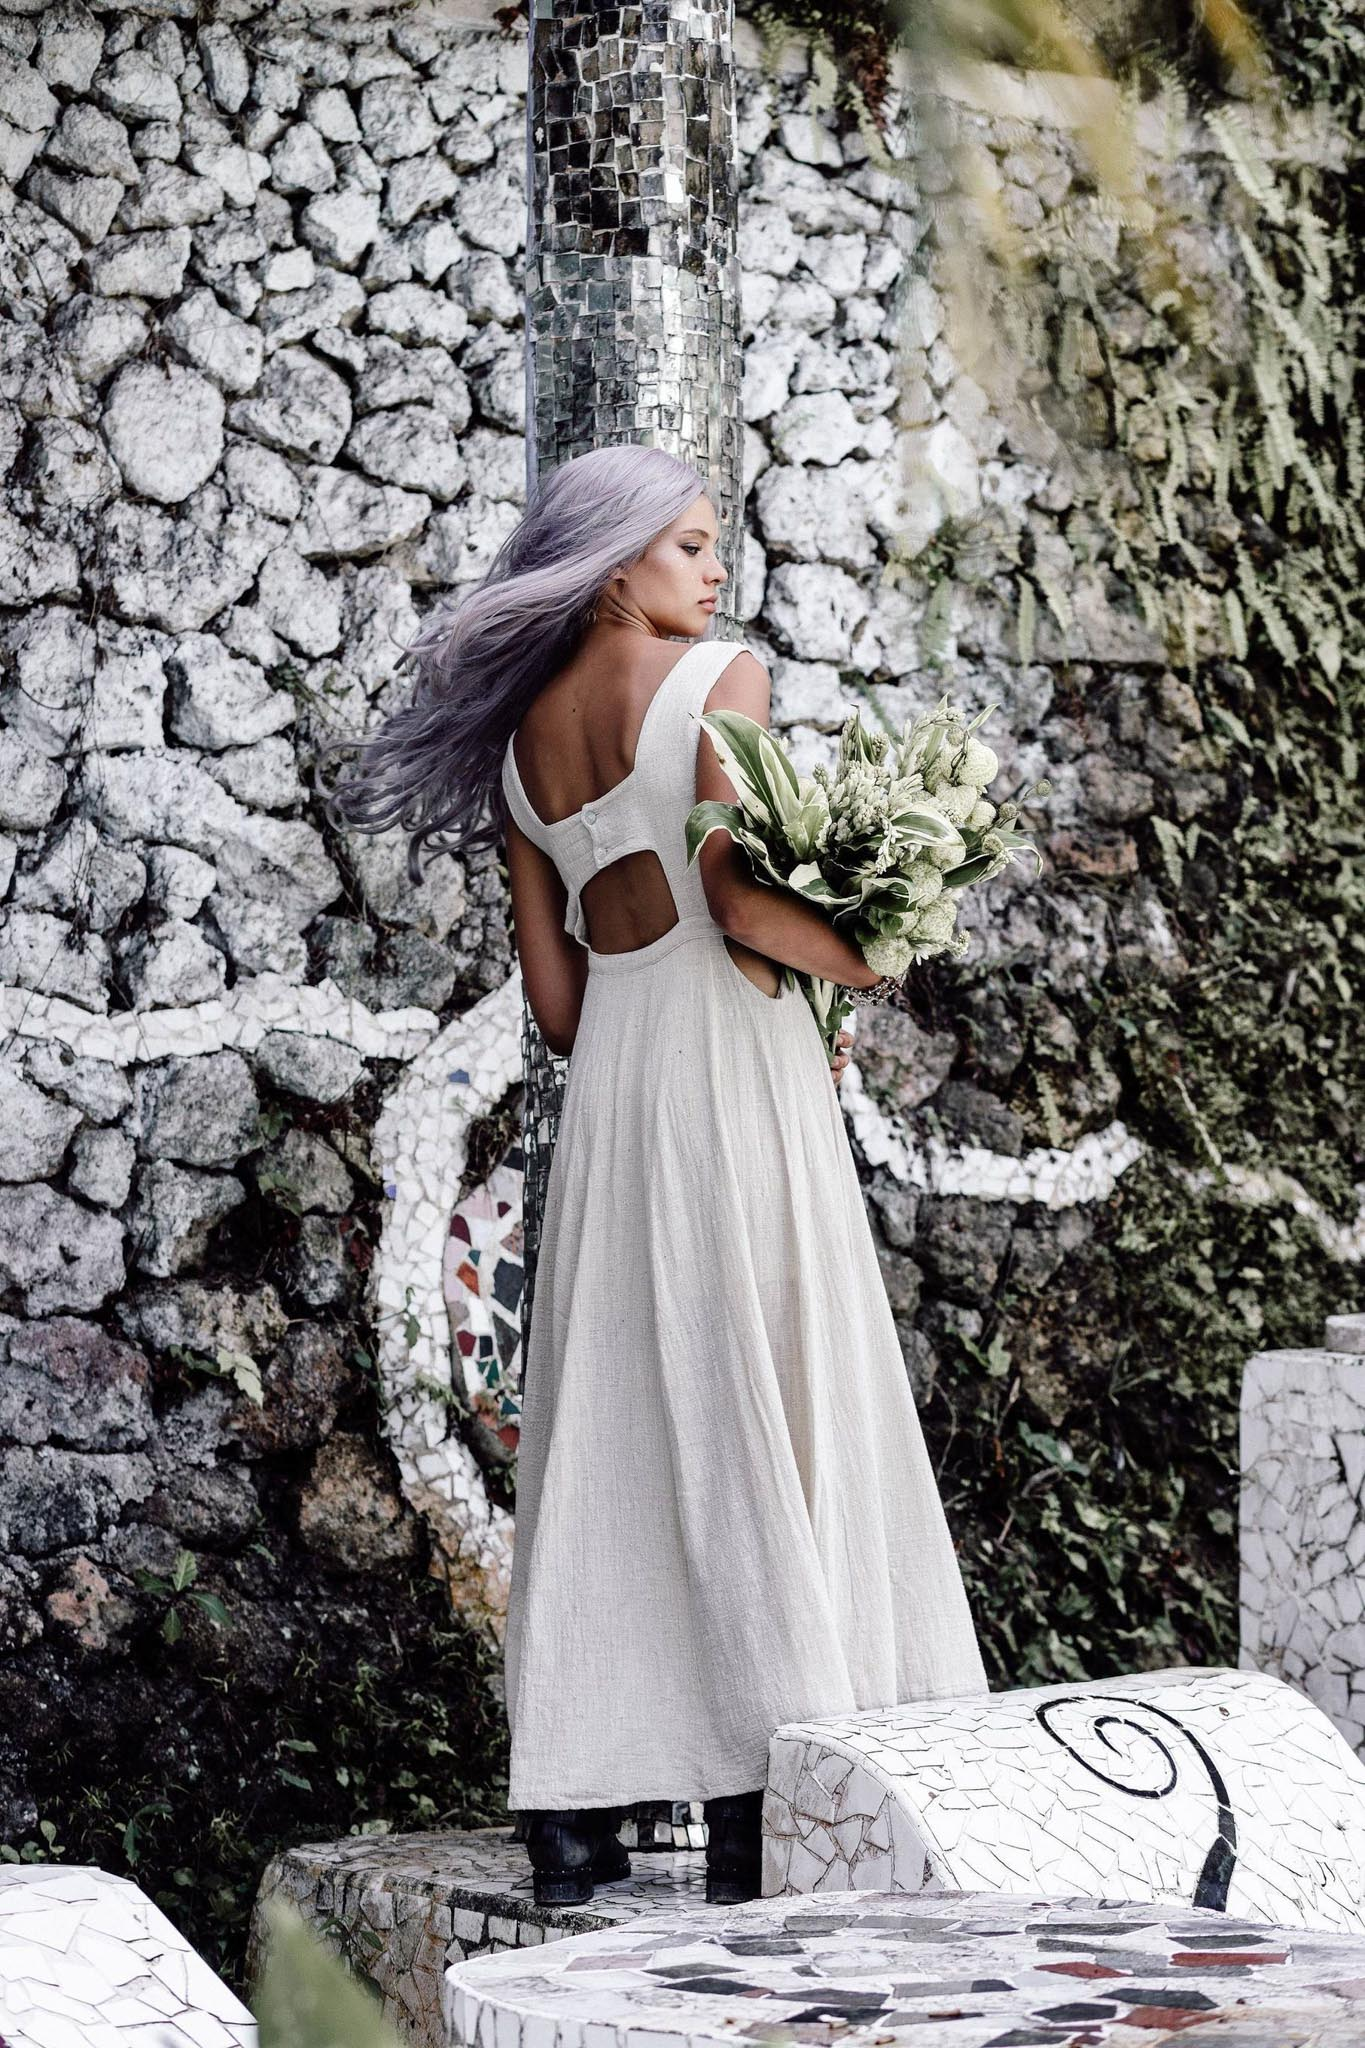 Long Boho Simple Wedding Dress - AYA Sacred Wear  Edit alt text